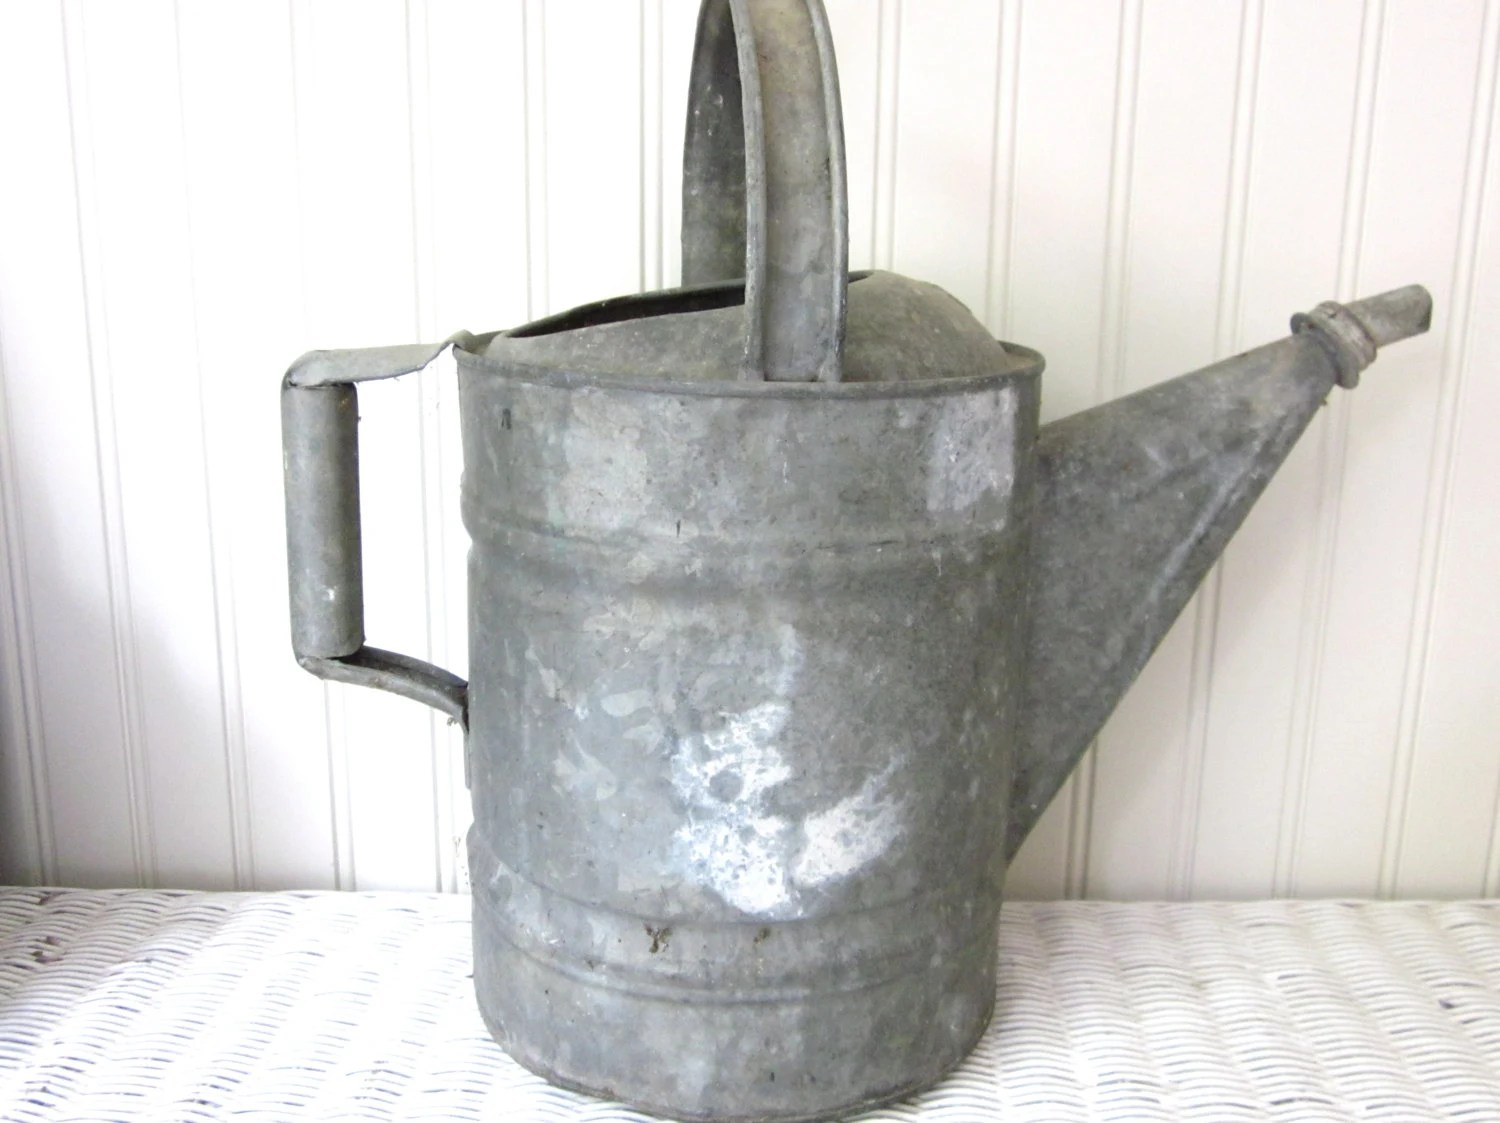 Vintage galvanized metal watering can, gardening - Stratfieldworkshop